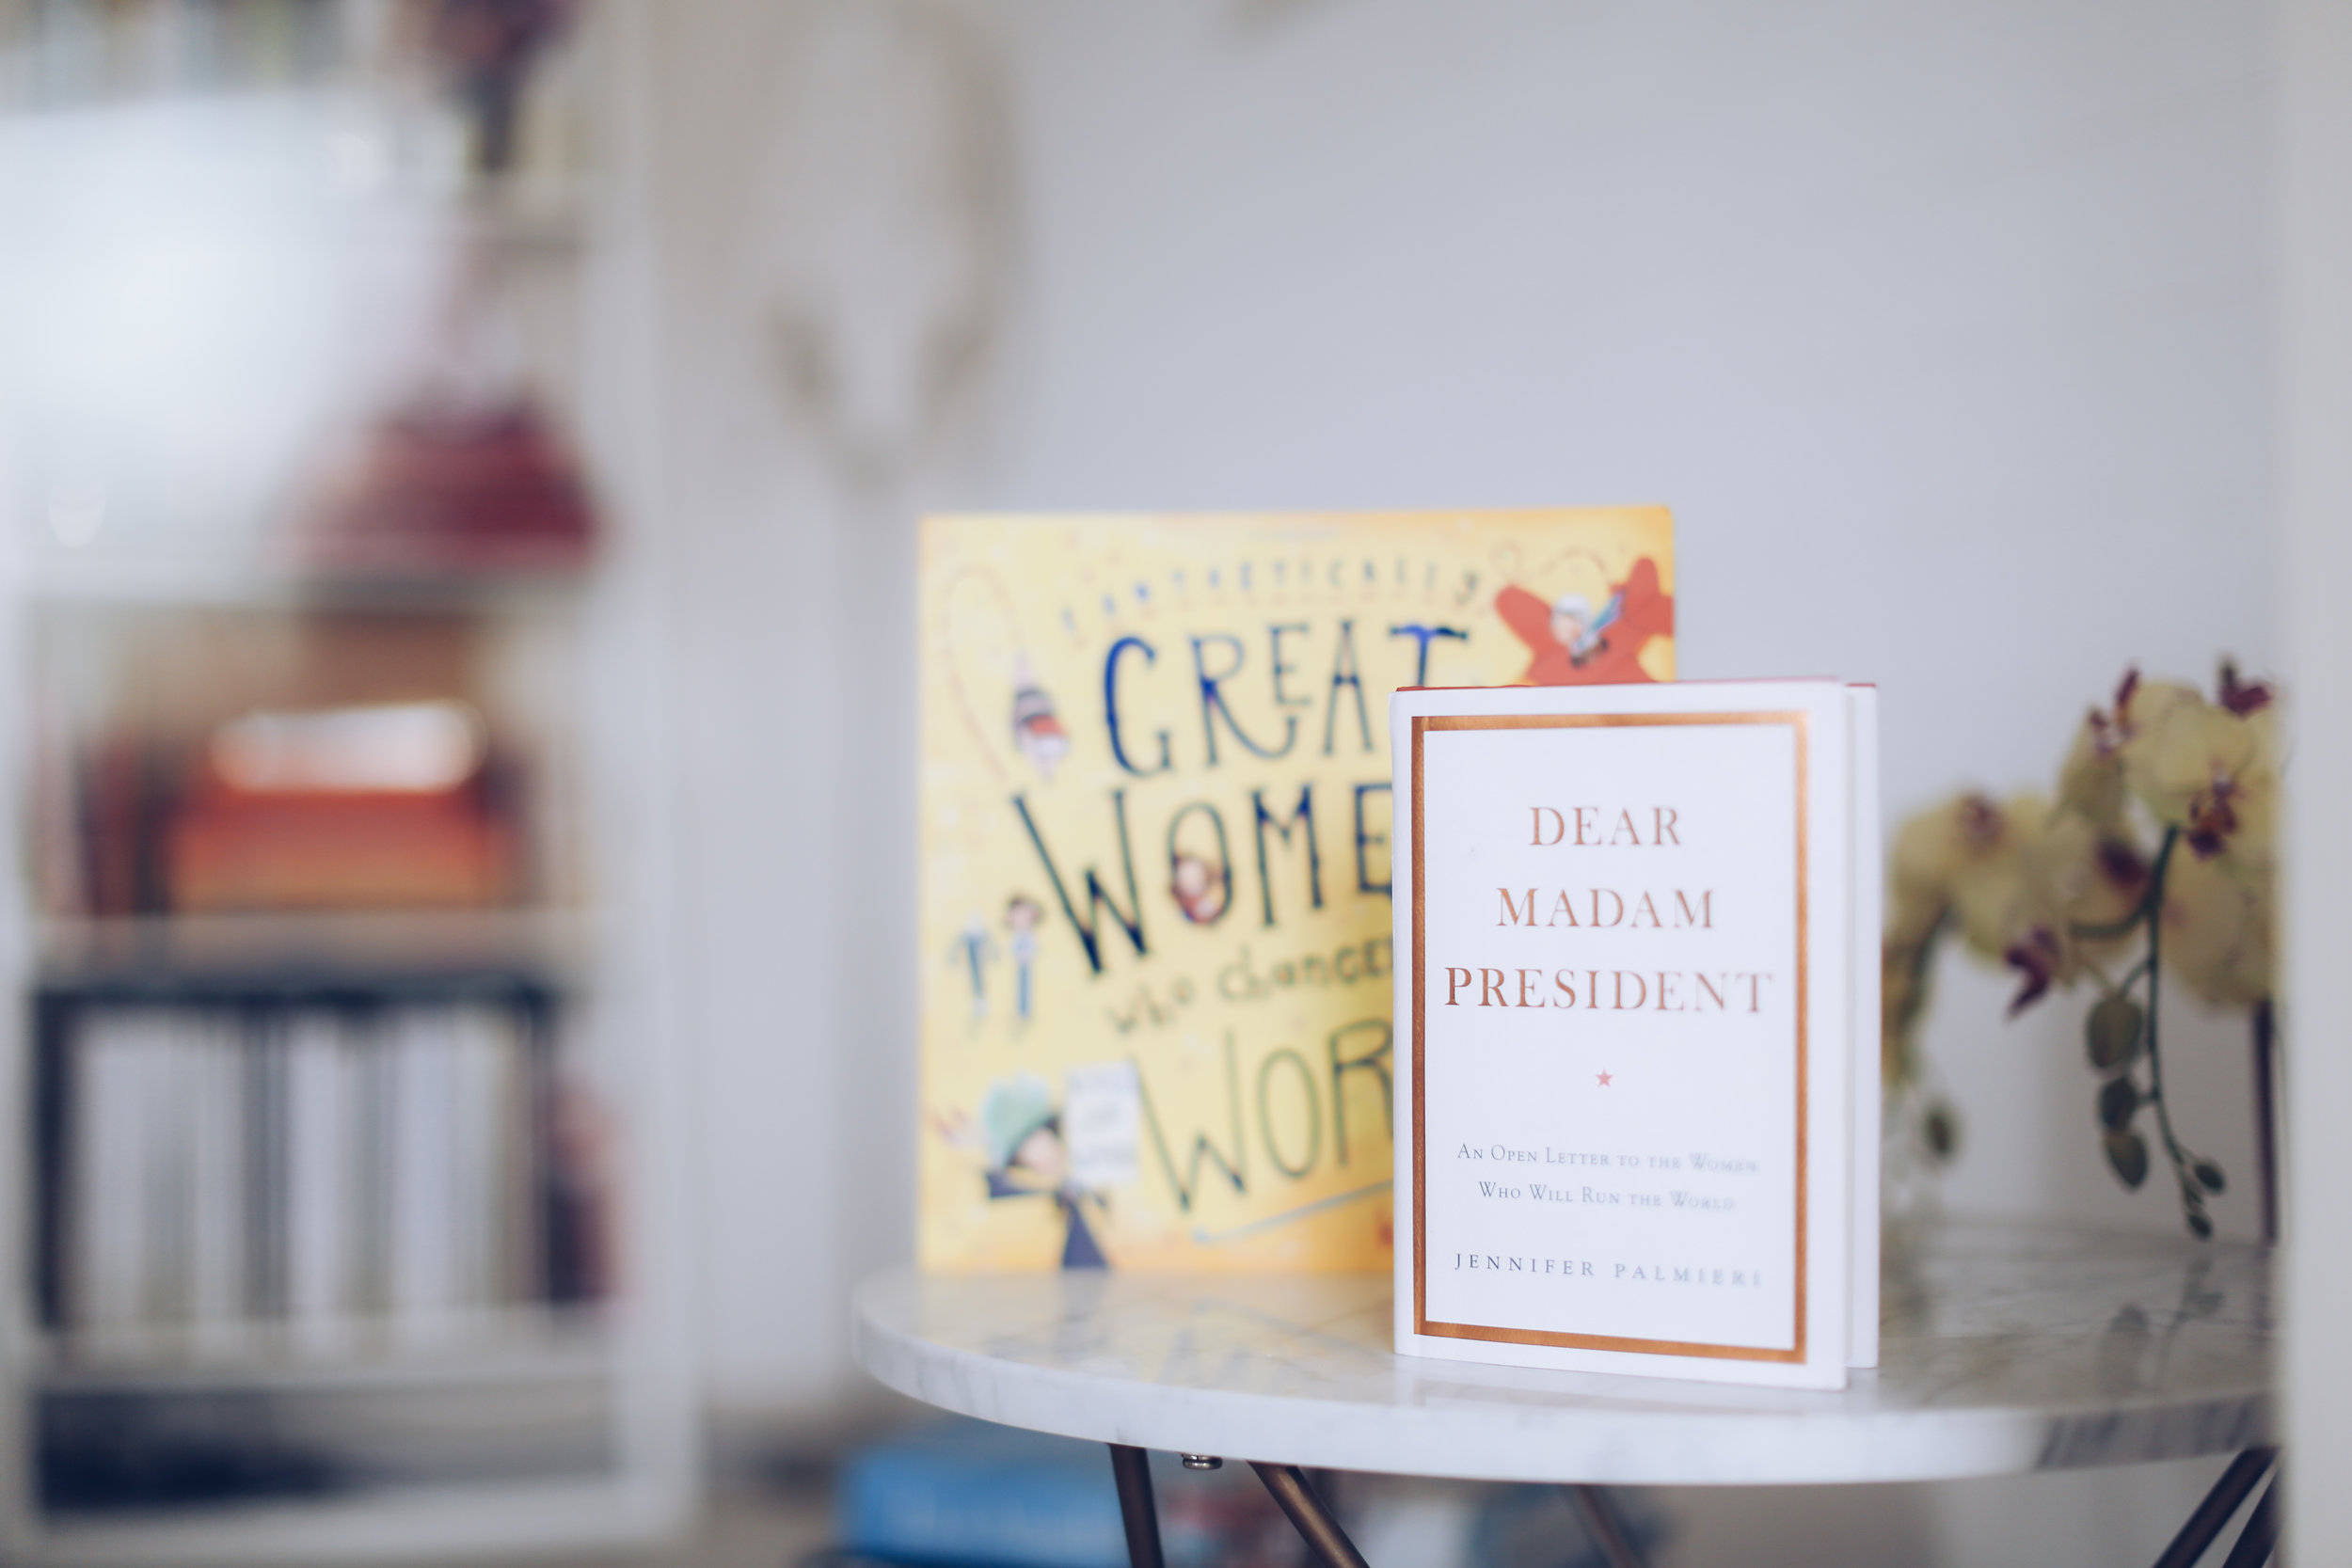 Fantastic female literature: Dear Madam President by Jennifer Palmieri and Fantastically Great Women Who Changed The World by Kate Pankhurst